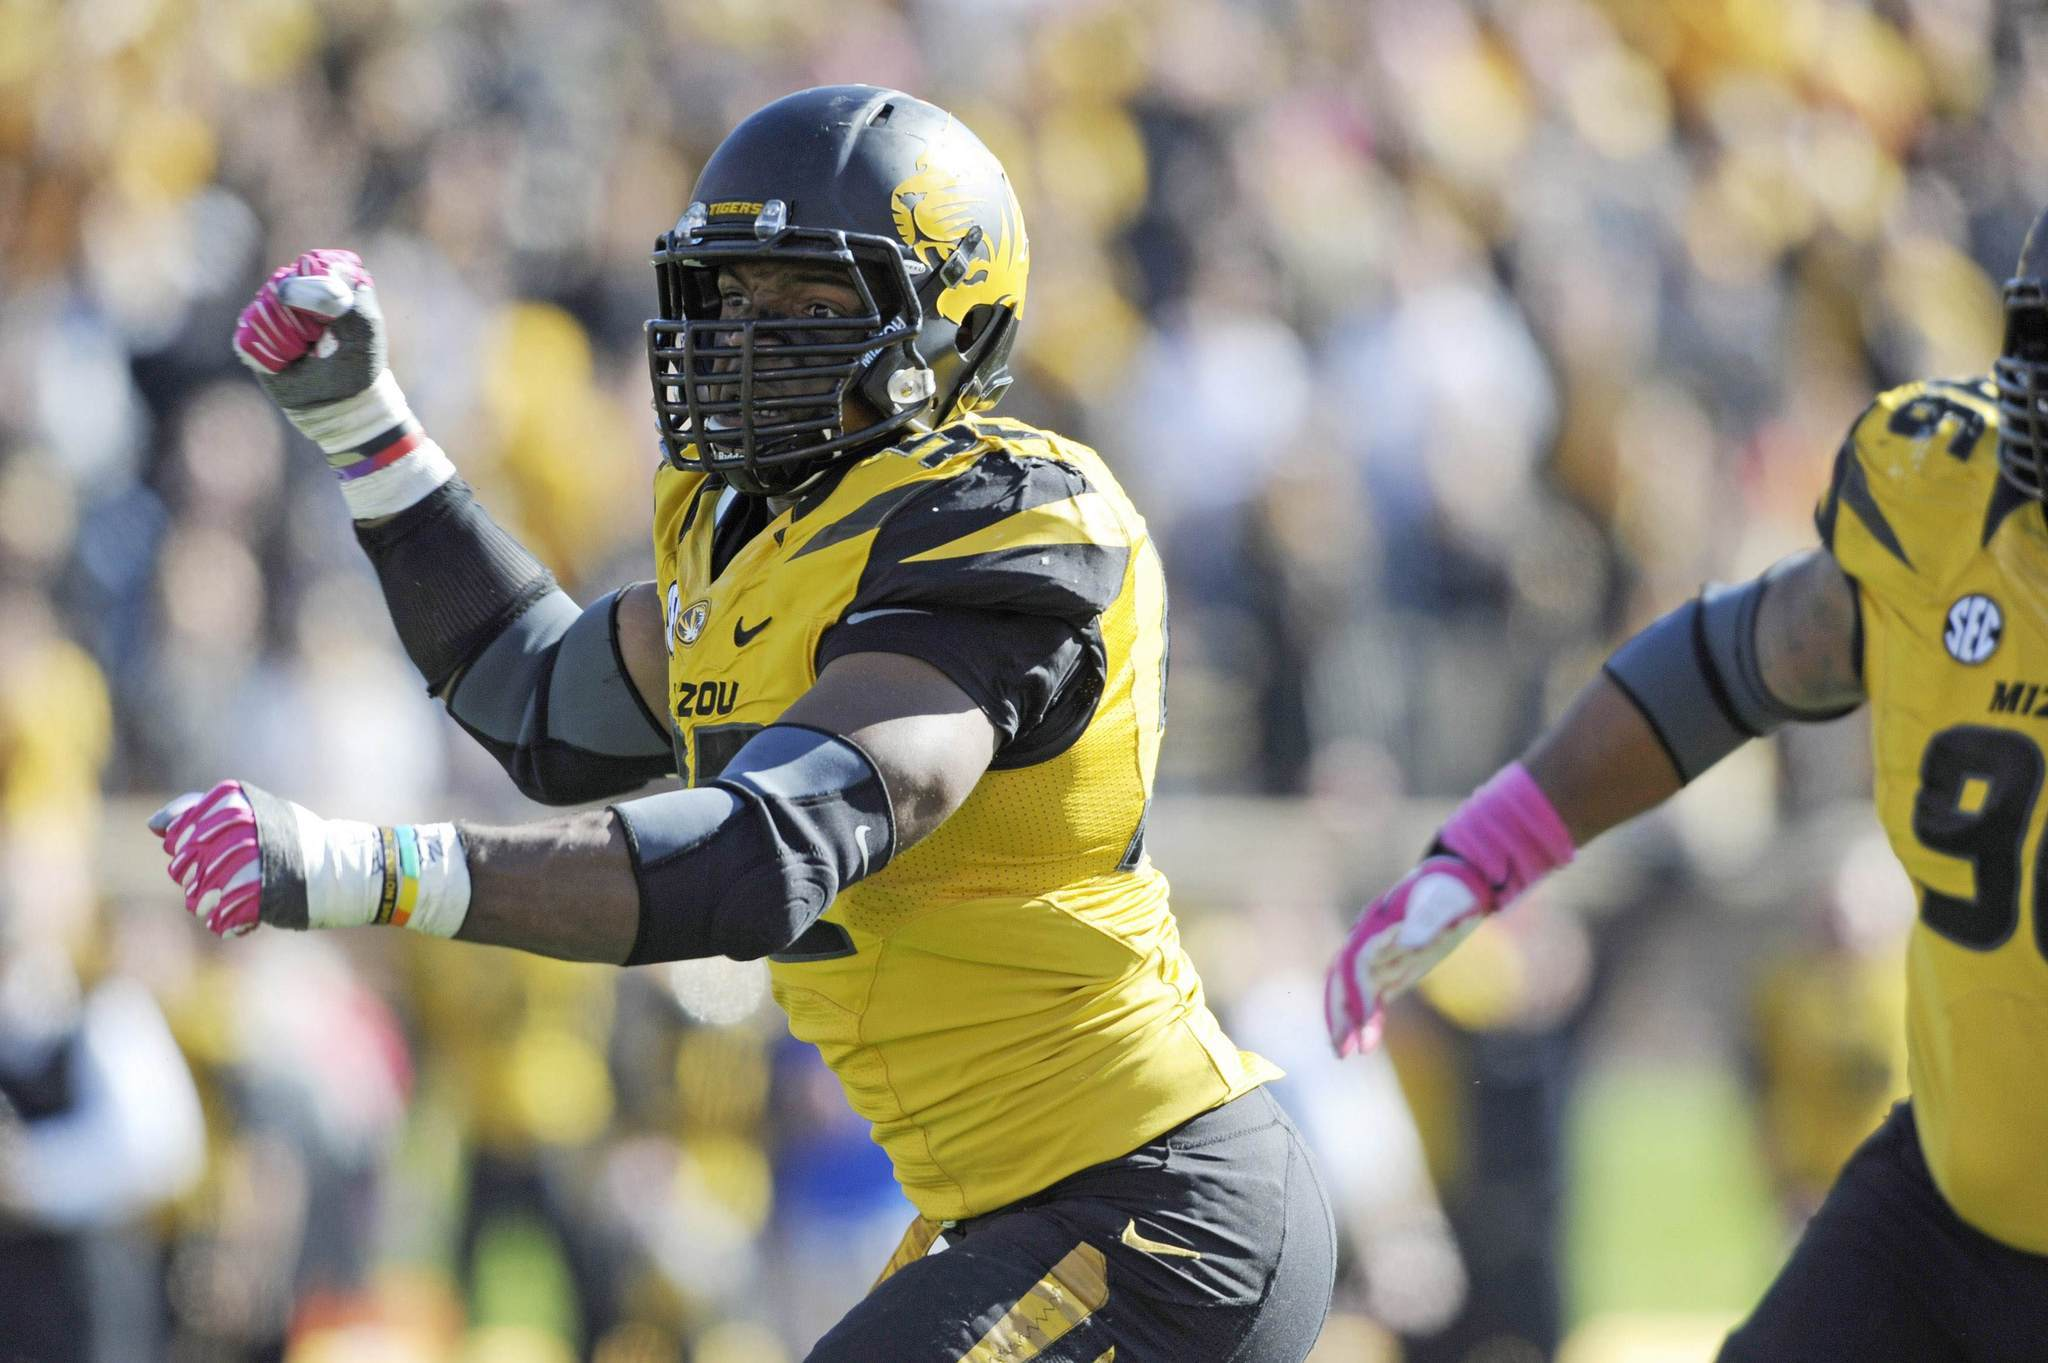 Missouri Tigers defensive lineman Michael Sam (52) celebrates during a game against the Florida Gators last October. Sam, who was the Southeastern Conference defensive player of the year, has announced he is gay.